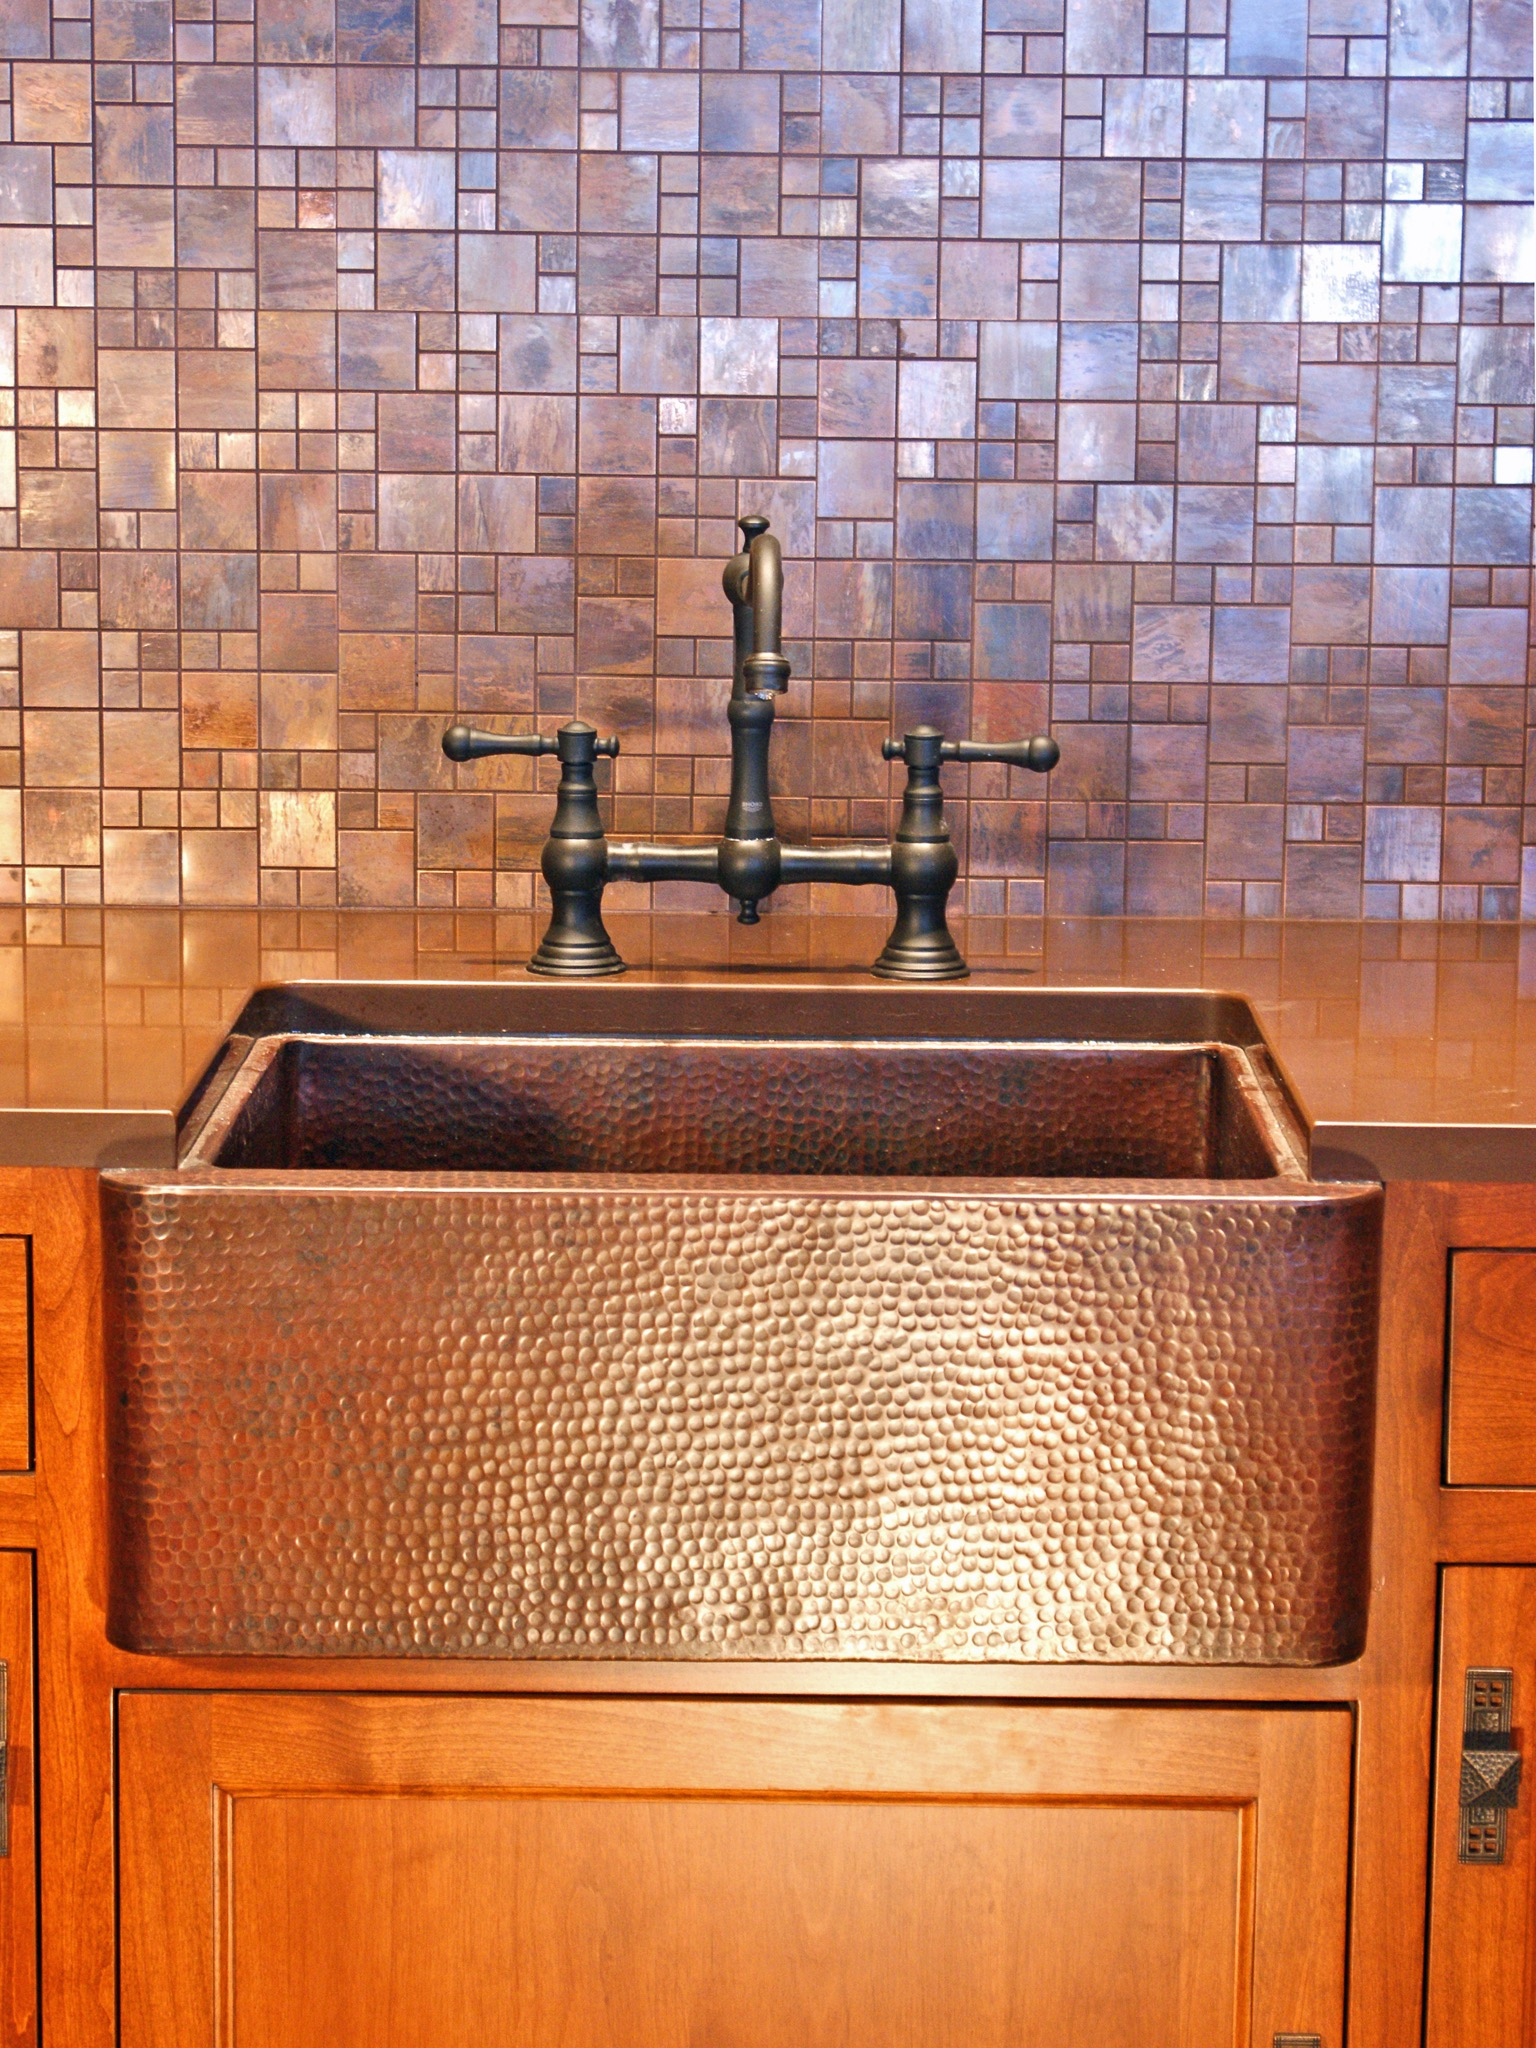 Rustic Copper Kitchen Sink And Tile Backsplash (Image 27 of 32)